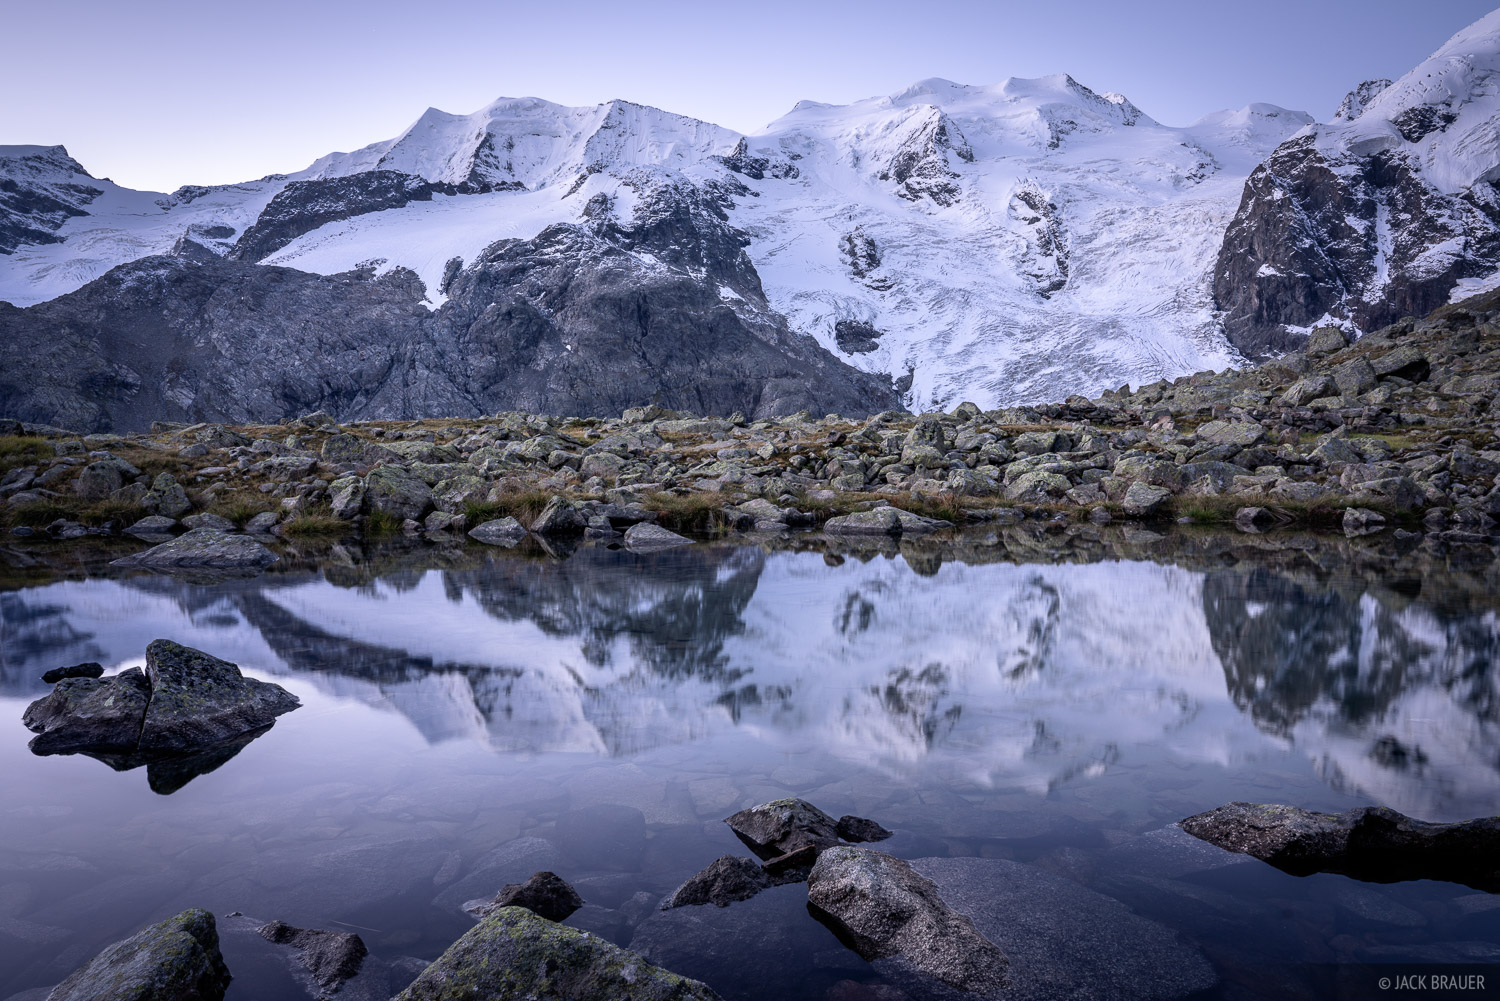 Bernina Range, Piz Palü, Piz Zupo, Rhaetian Alps, Switzerland, reflection, photo